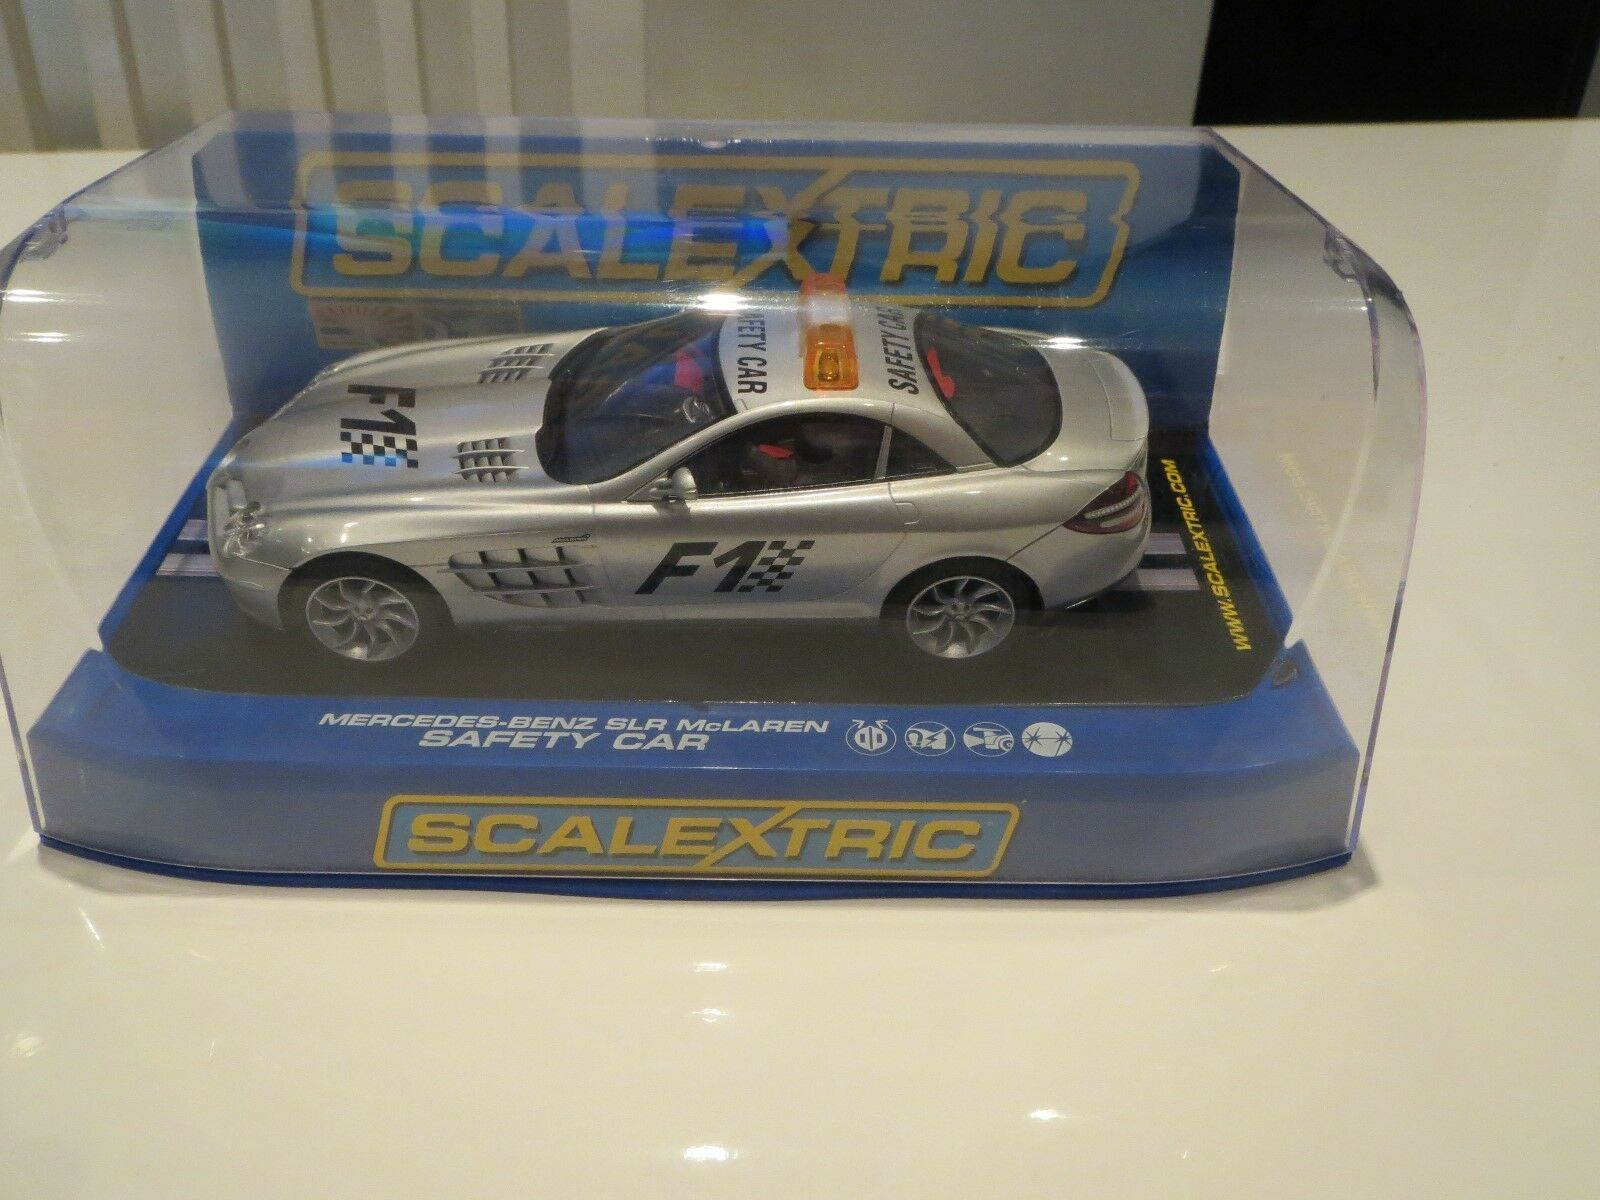 Scalextric Box 1 32 scale car - C2756 Mercedes-Benz SLR McLaren. F1 Safety car